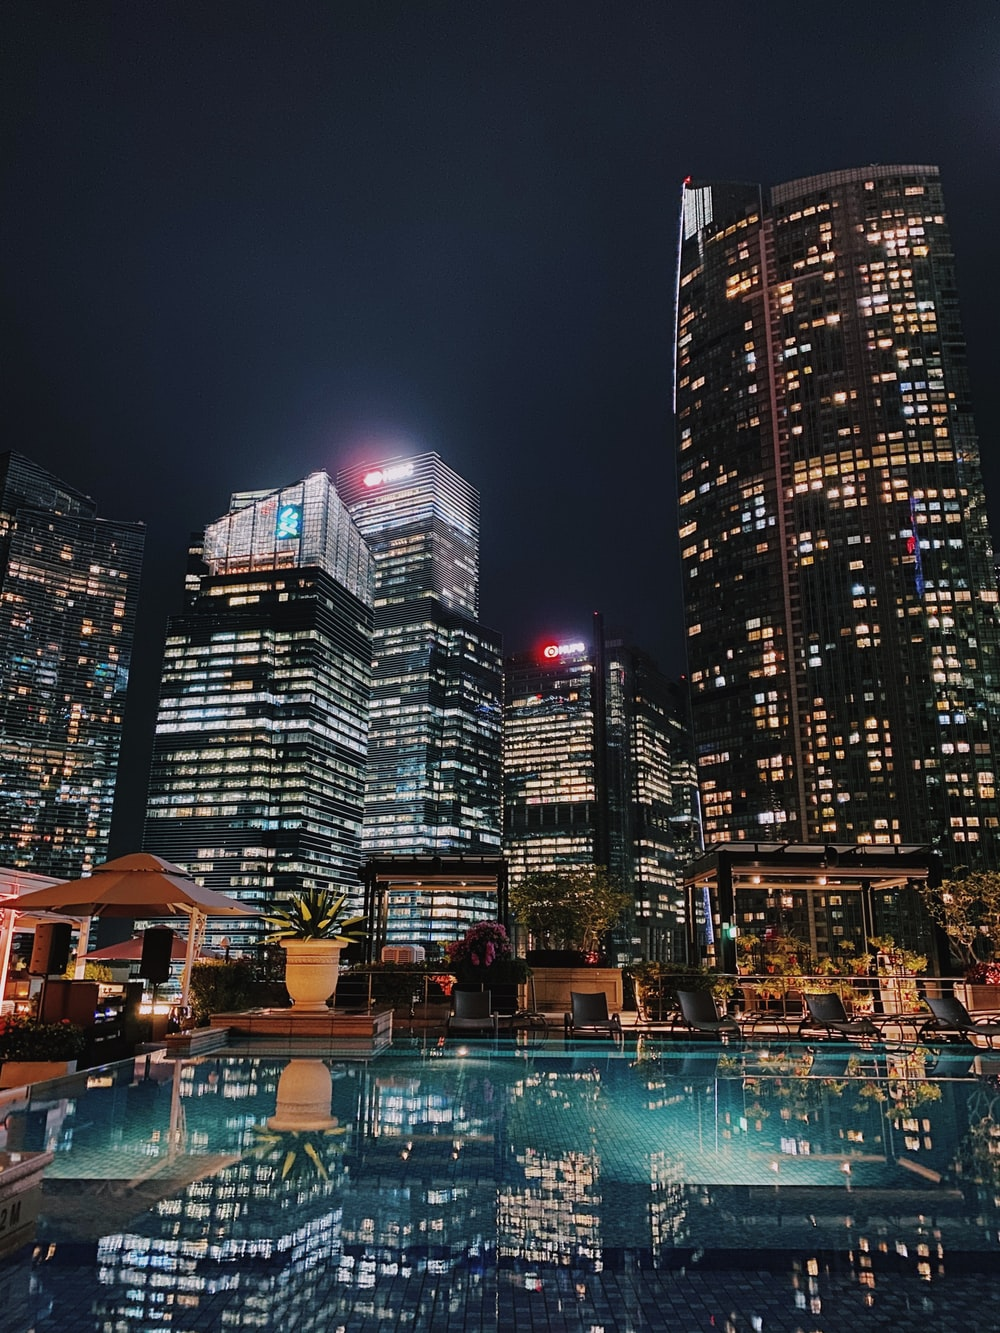 high rise buildings near body of water during night time